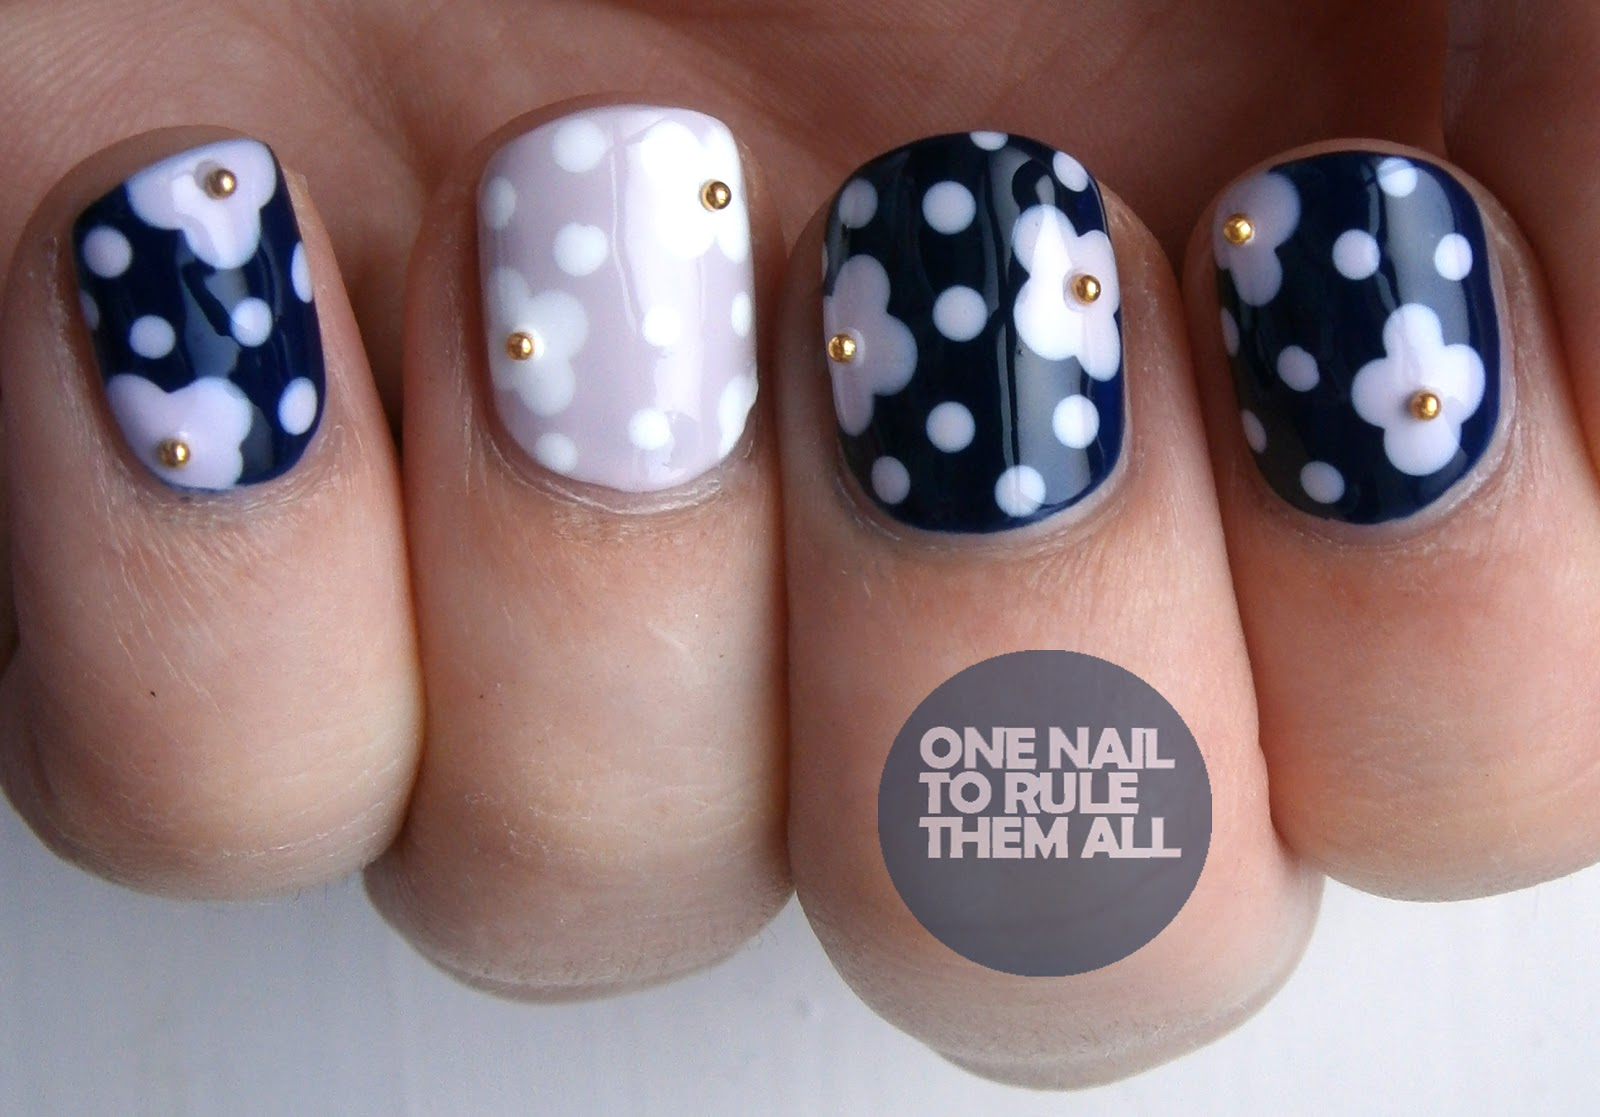 One nail to rule them all flowers and beads saturday 13 october 2012 sciox Image collections